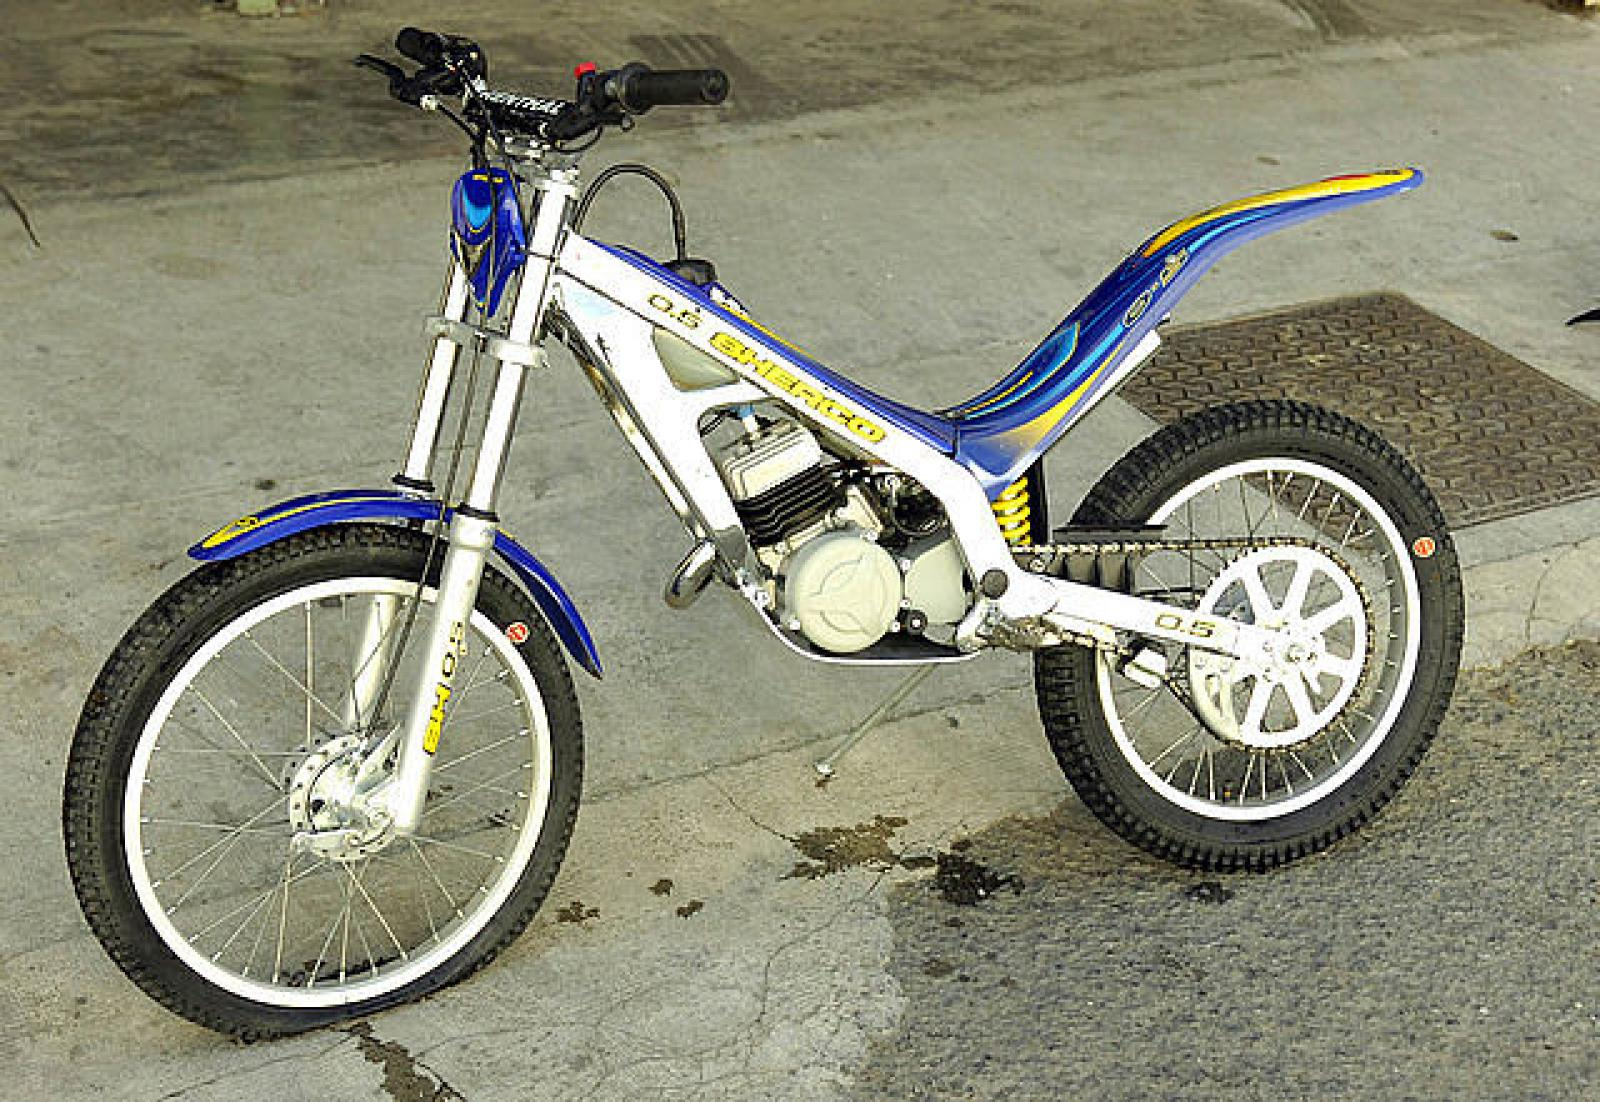 Sherco 0.5 Trial images #124562